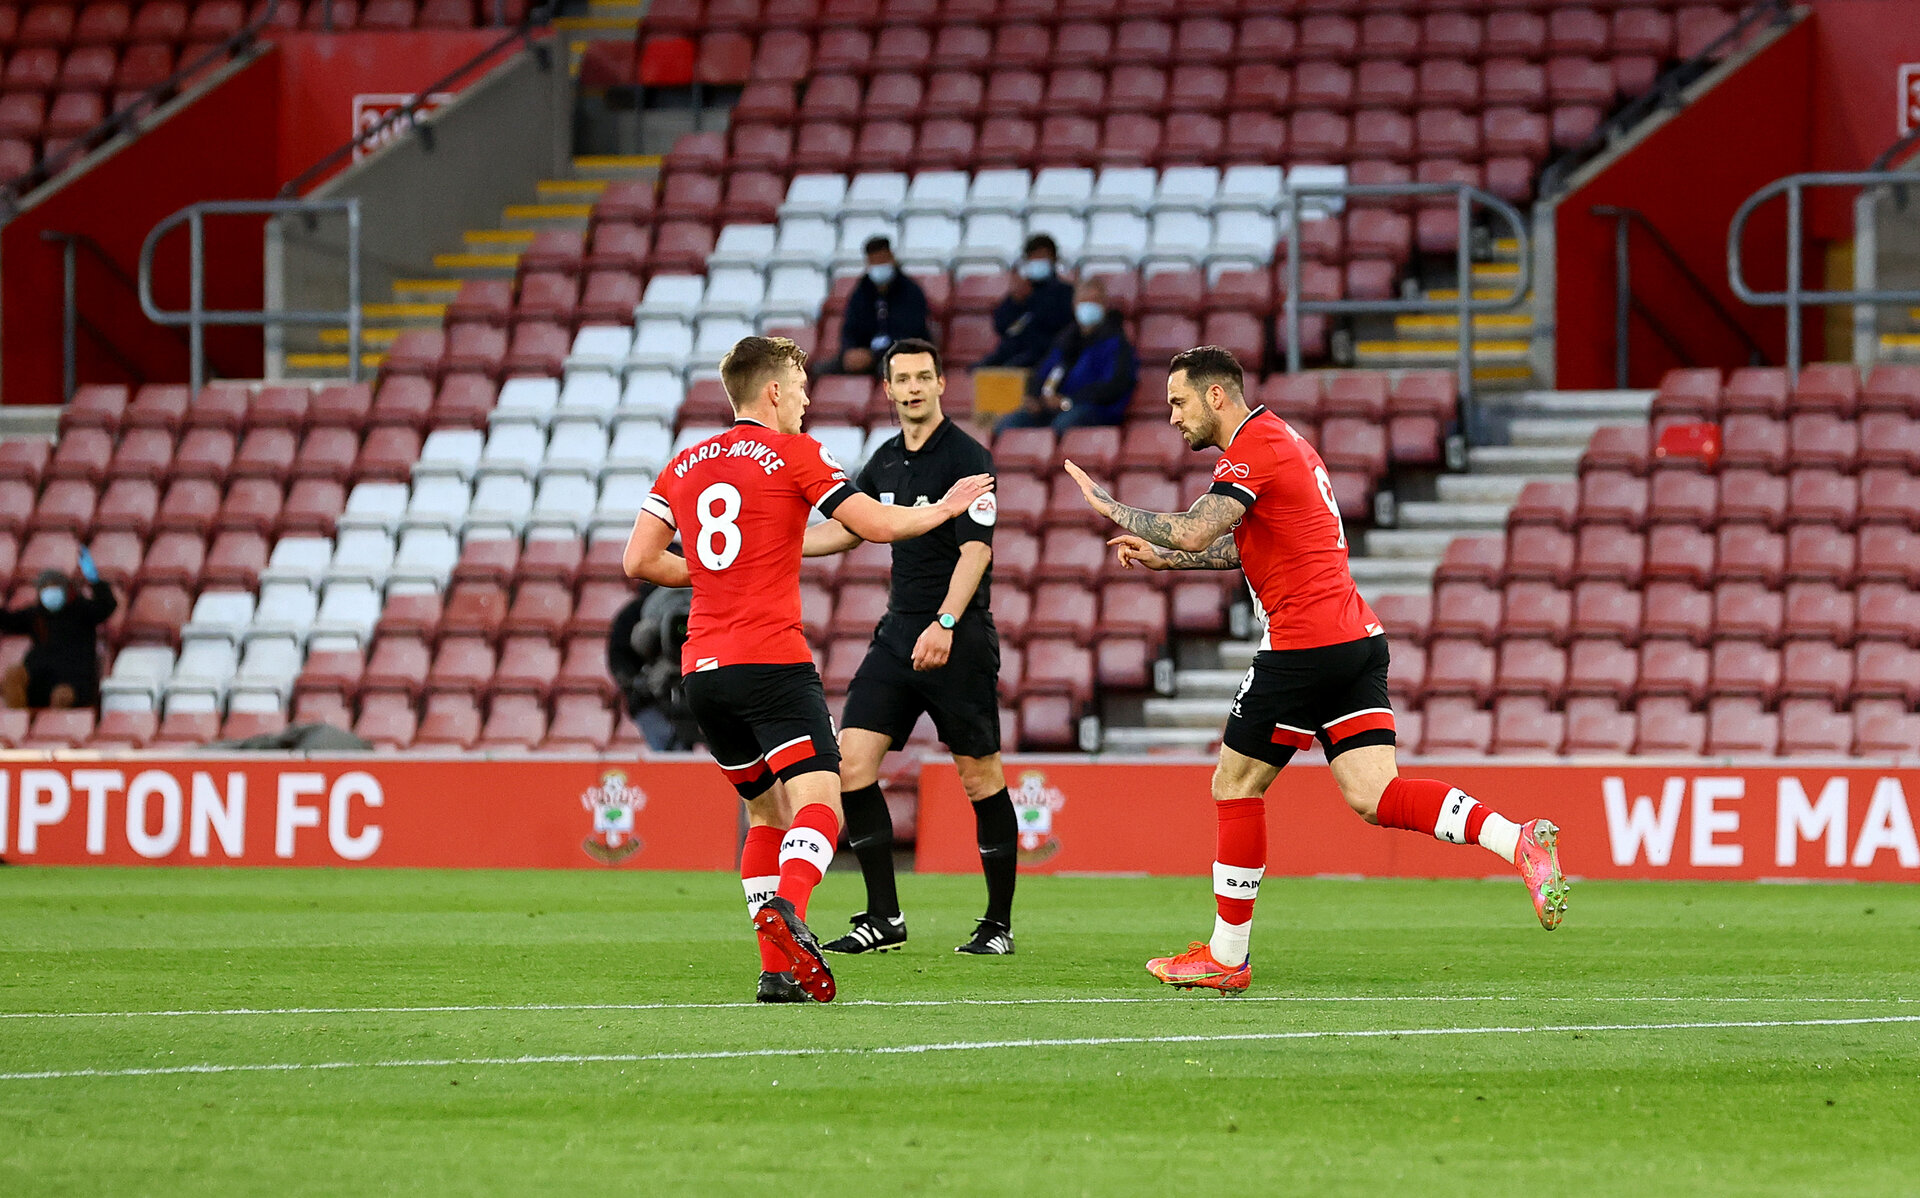 SOUTHAMPTON, ENGLAND - MAY 11: Danny Ings(R) of Southampton celebrates with James Ward-Prowse(L) after scoring during the Premier League match between Southampton and Crystal Palace at St Mary's Stadium on May 11, 2021 in Southampton, England. Sporting stadiums around the UK remain under strict restrictions due to the Coronavirus Pandemic as Government social distancing laws prohibit fans inside venues resulting in games being played behind closed doors.  (Photo by Matt Watson/Southampton FC via Getty Images)